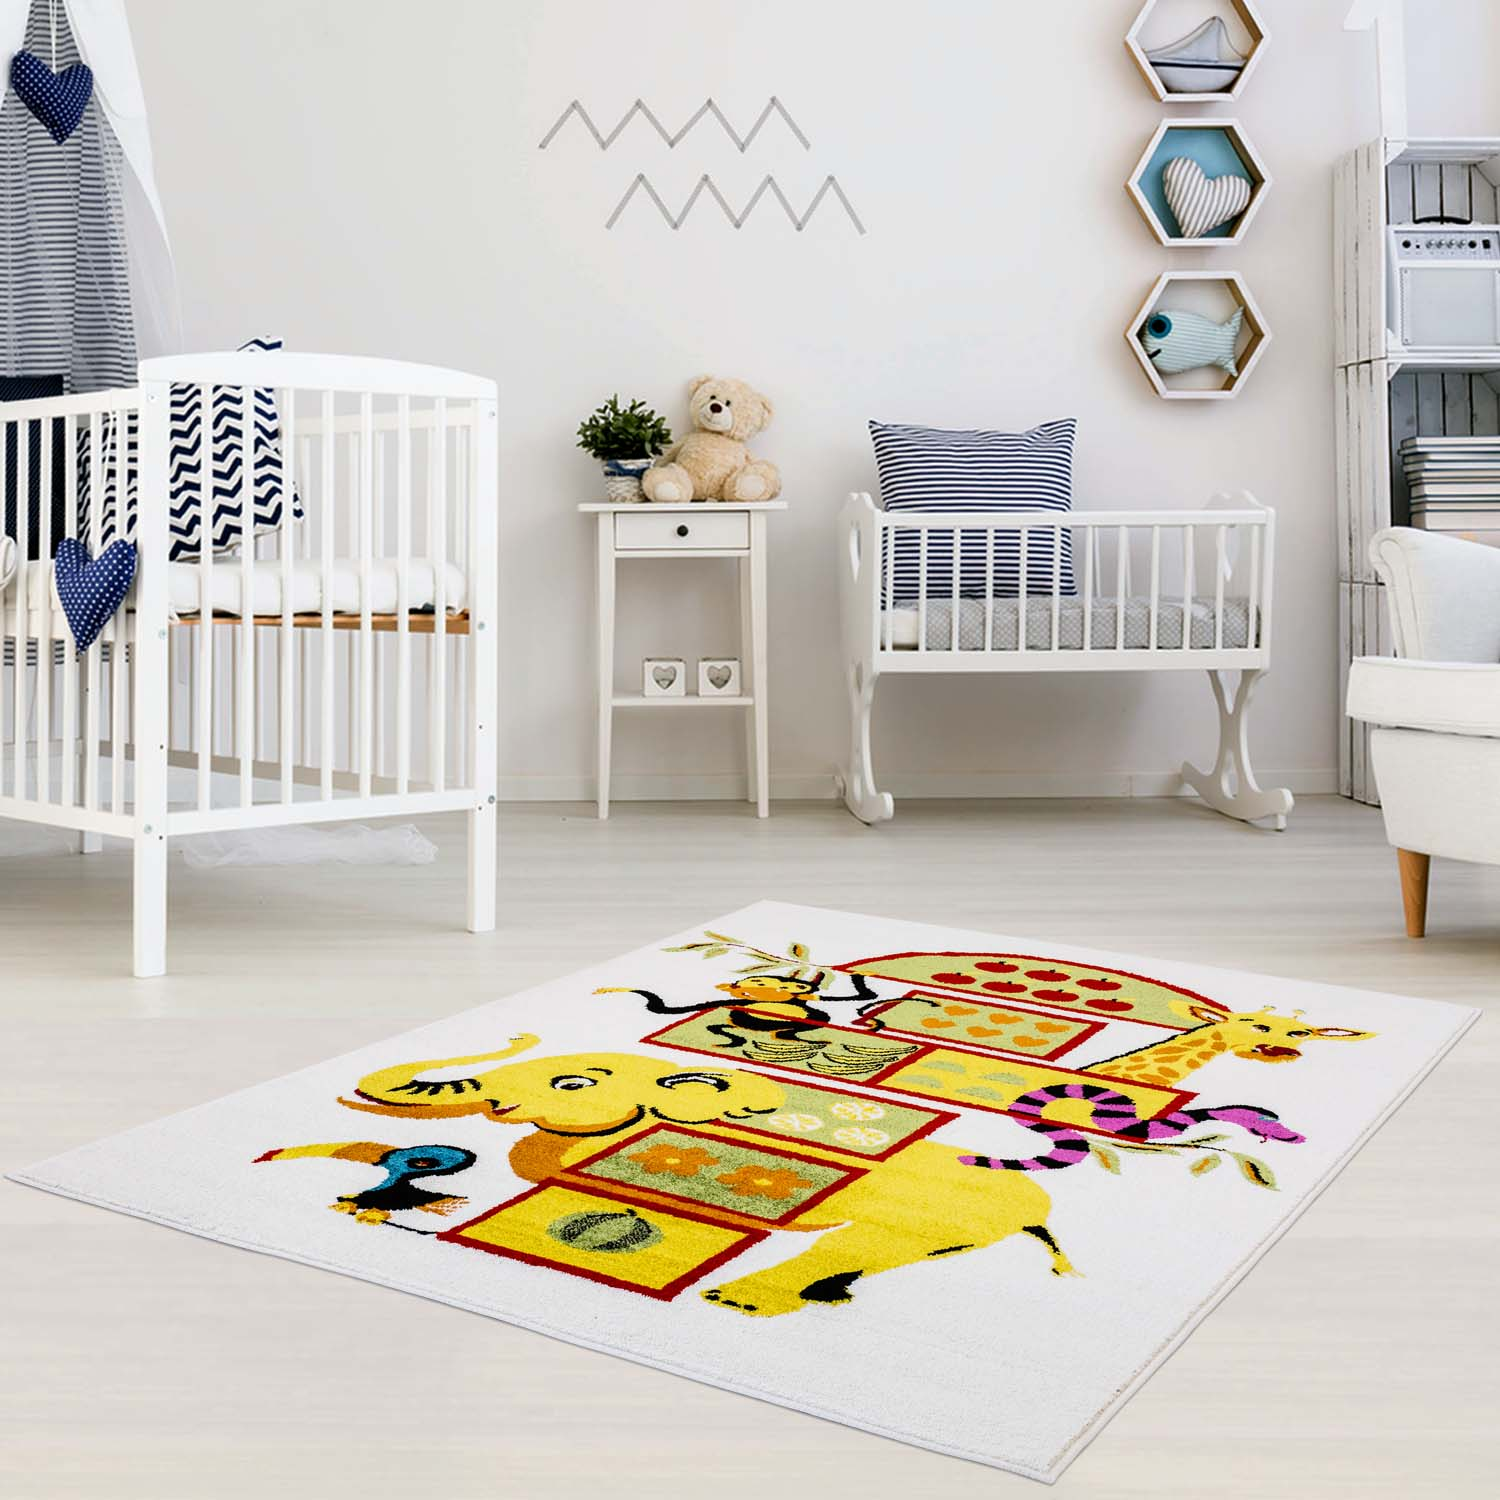 Ladole Rugs Adorable Cute Durable Soft Modern Moda Collection Kids Area Rug Carpet with Elephant White, 4x6